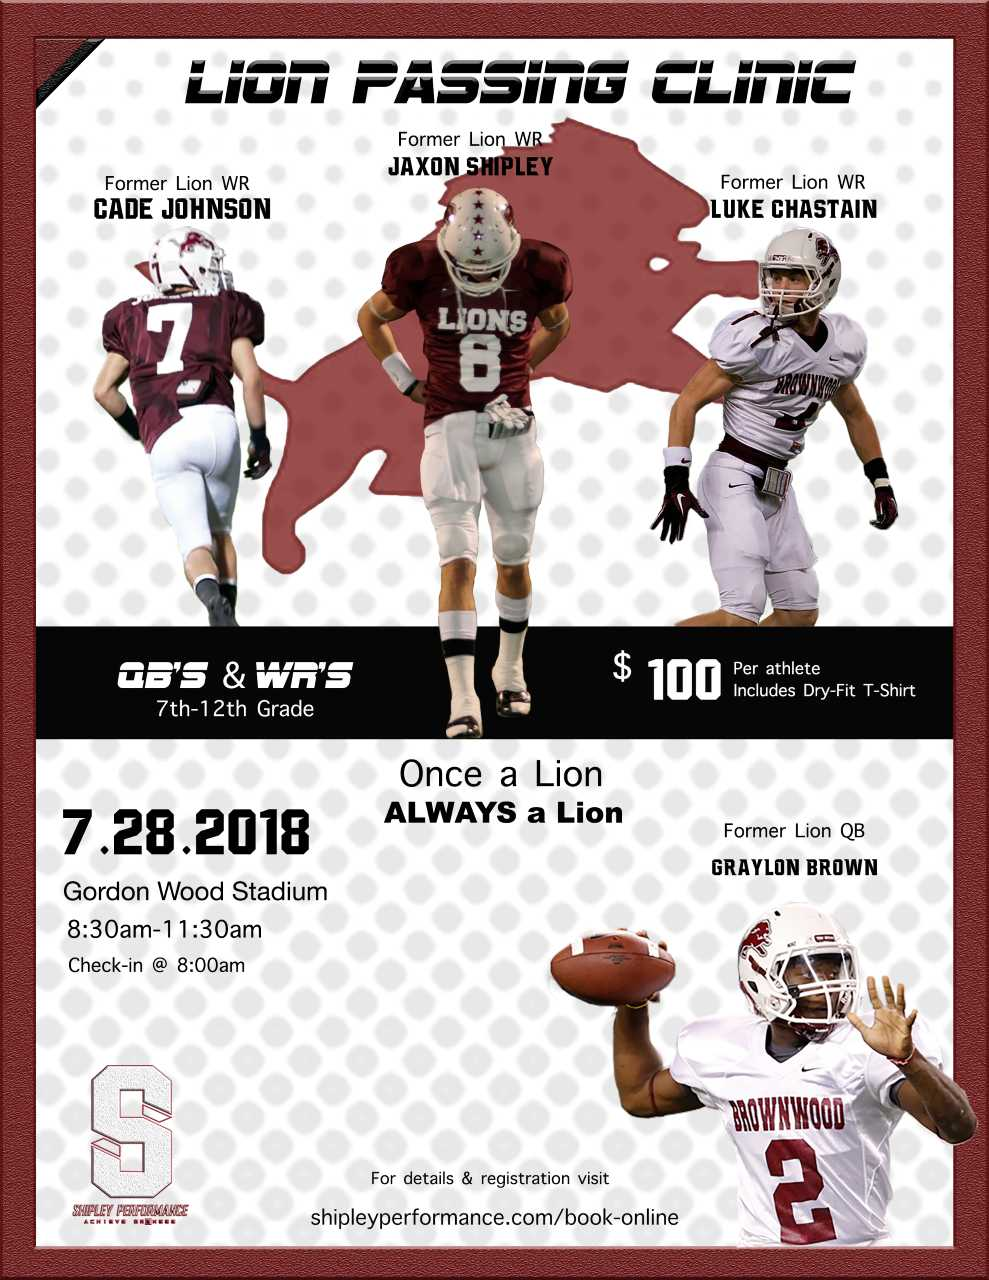 Shipley Performance Camp to be in Brownwood July 28